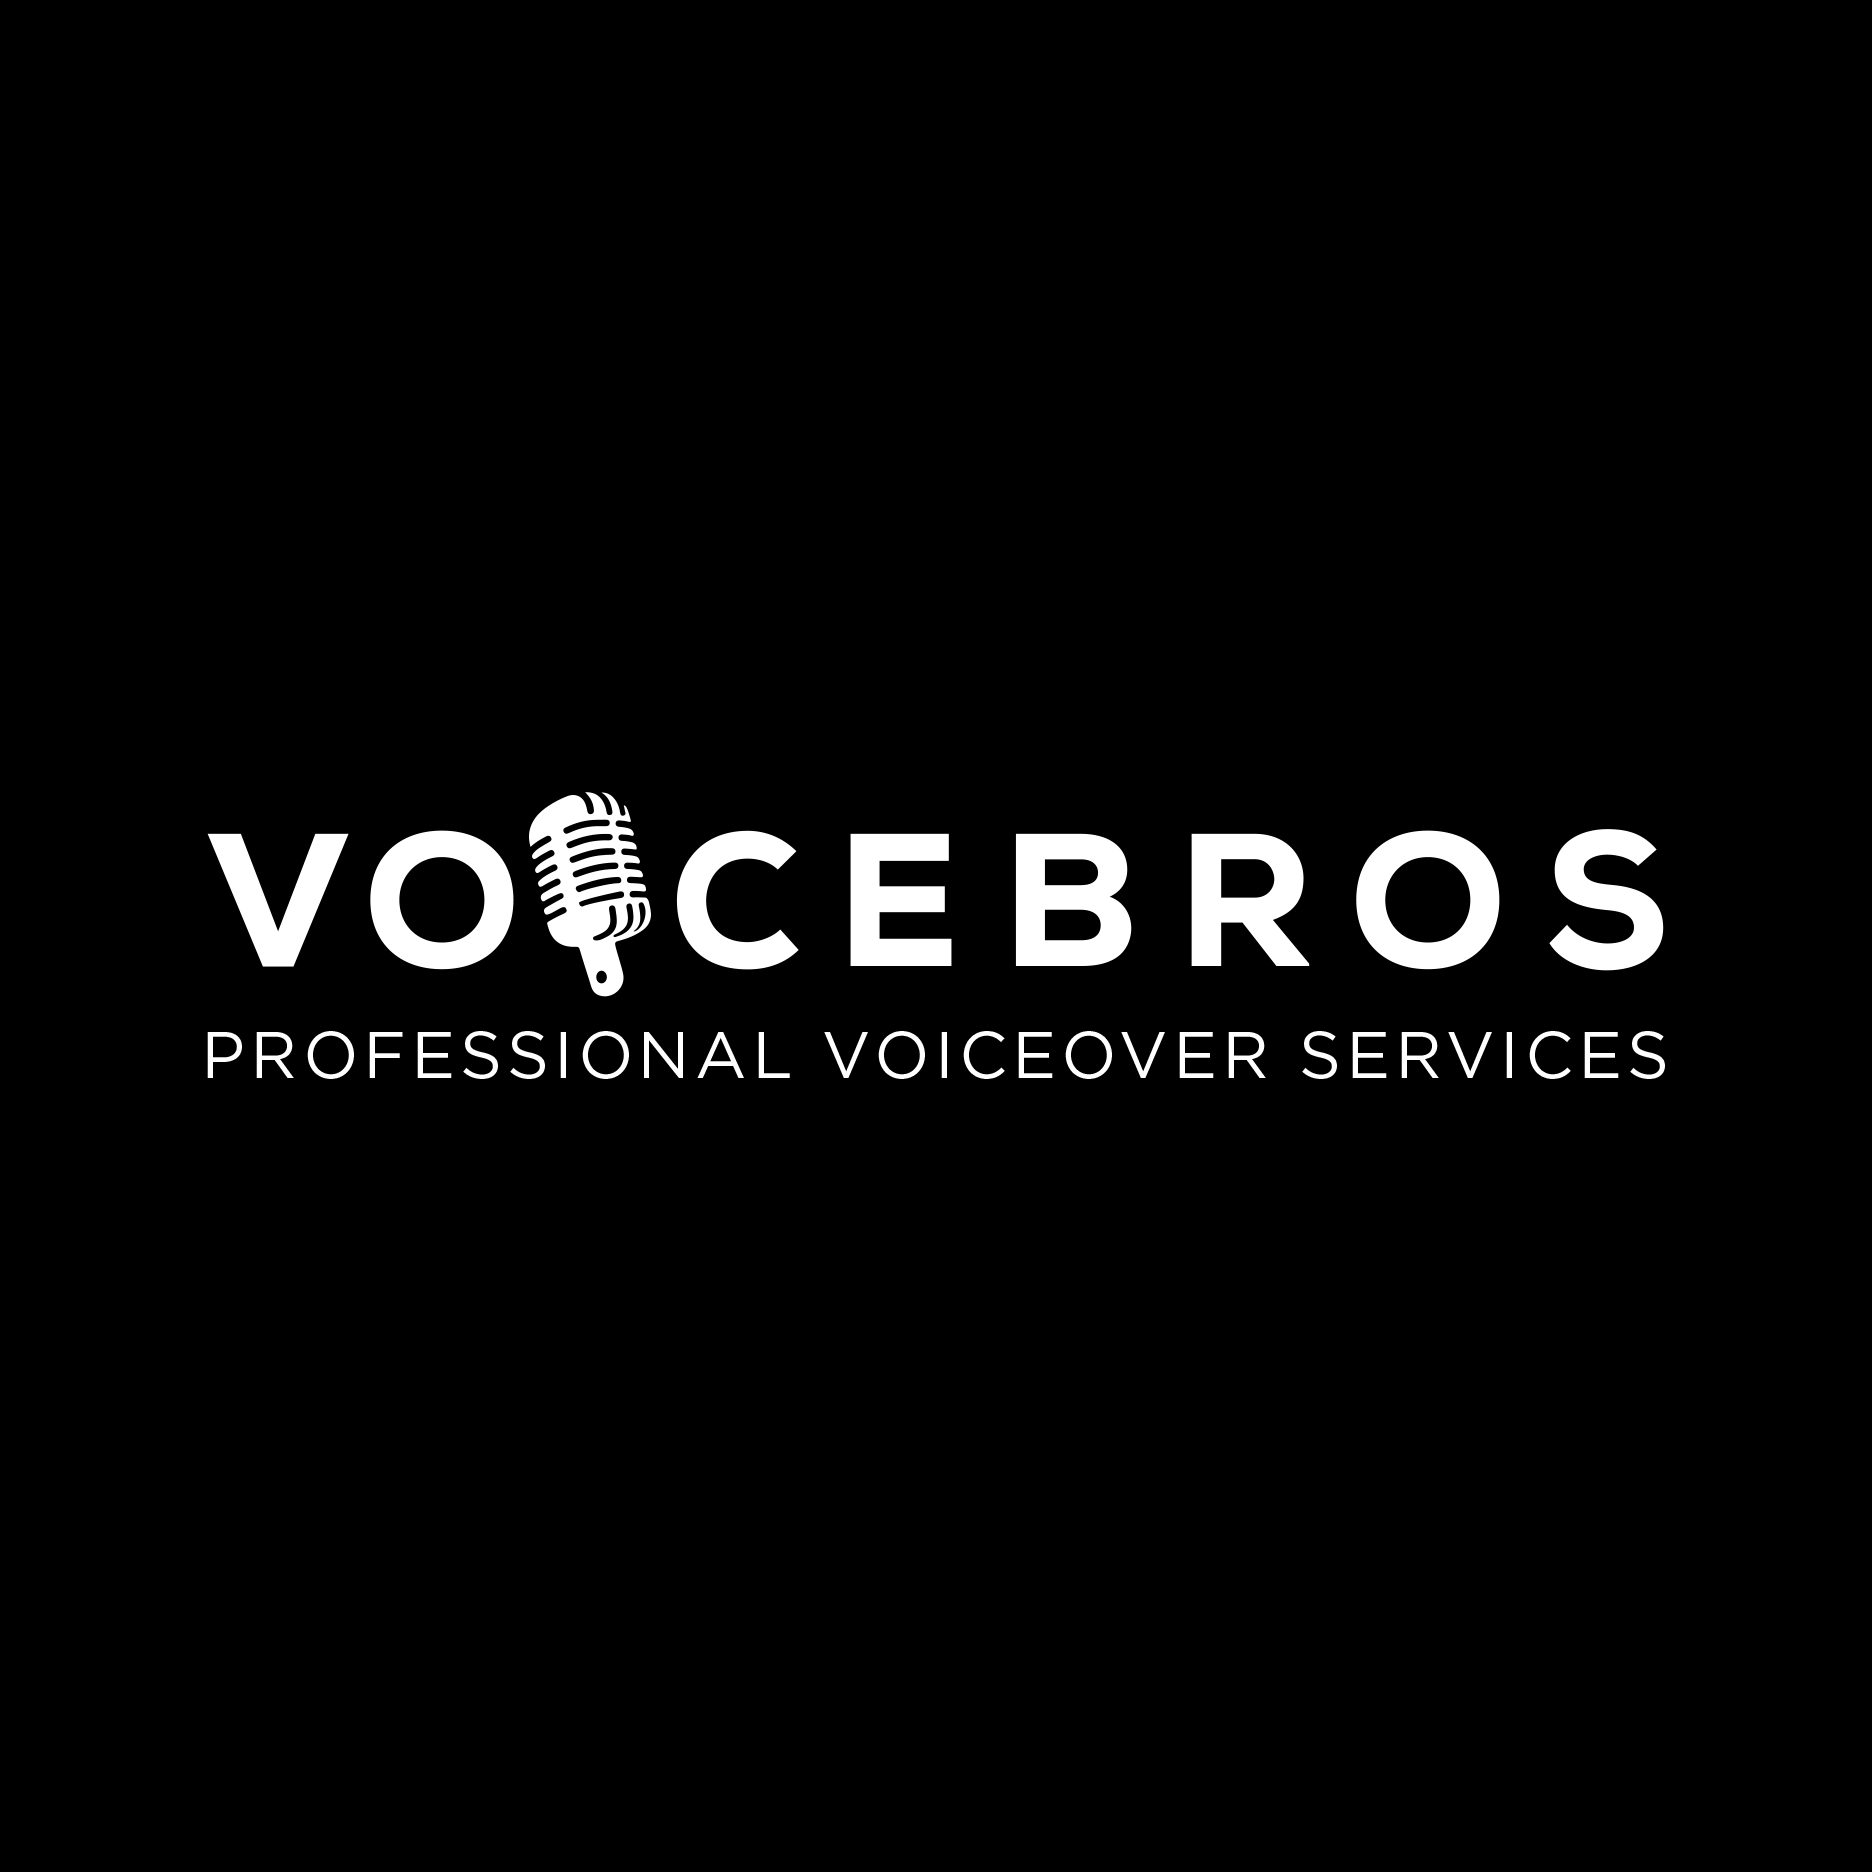 Gustavo Vieira is a voice over actor